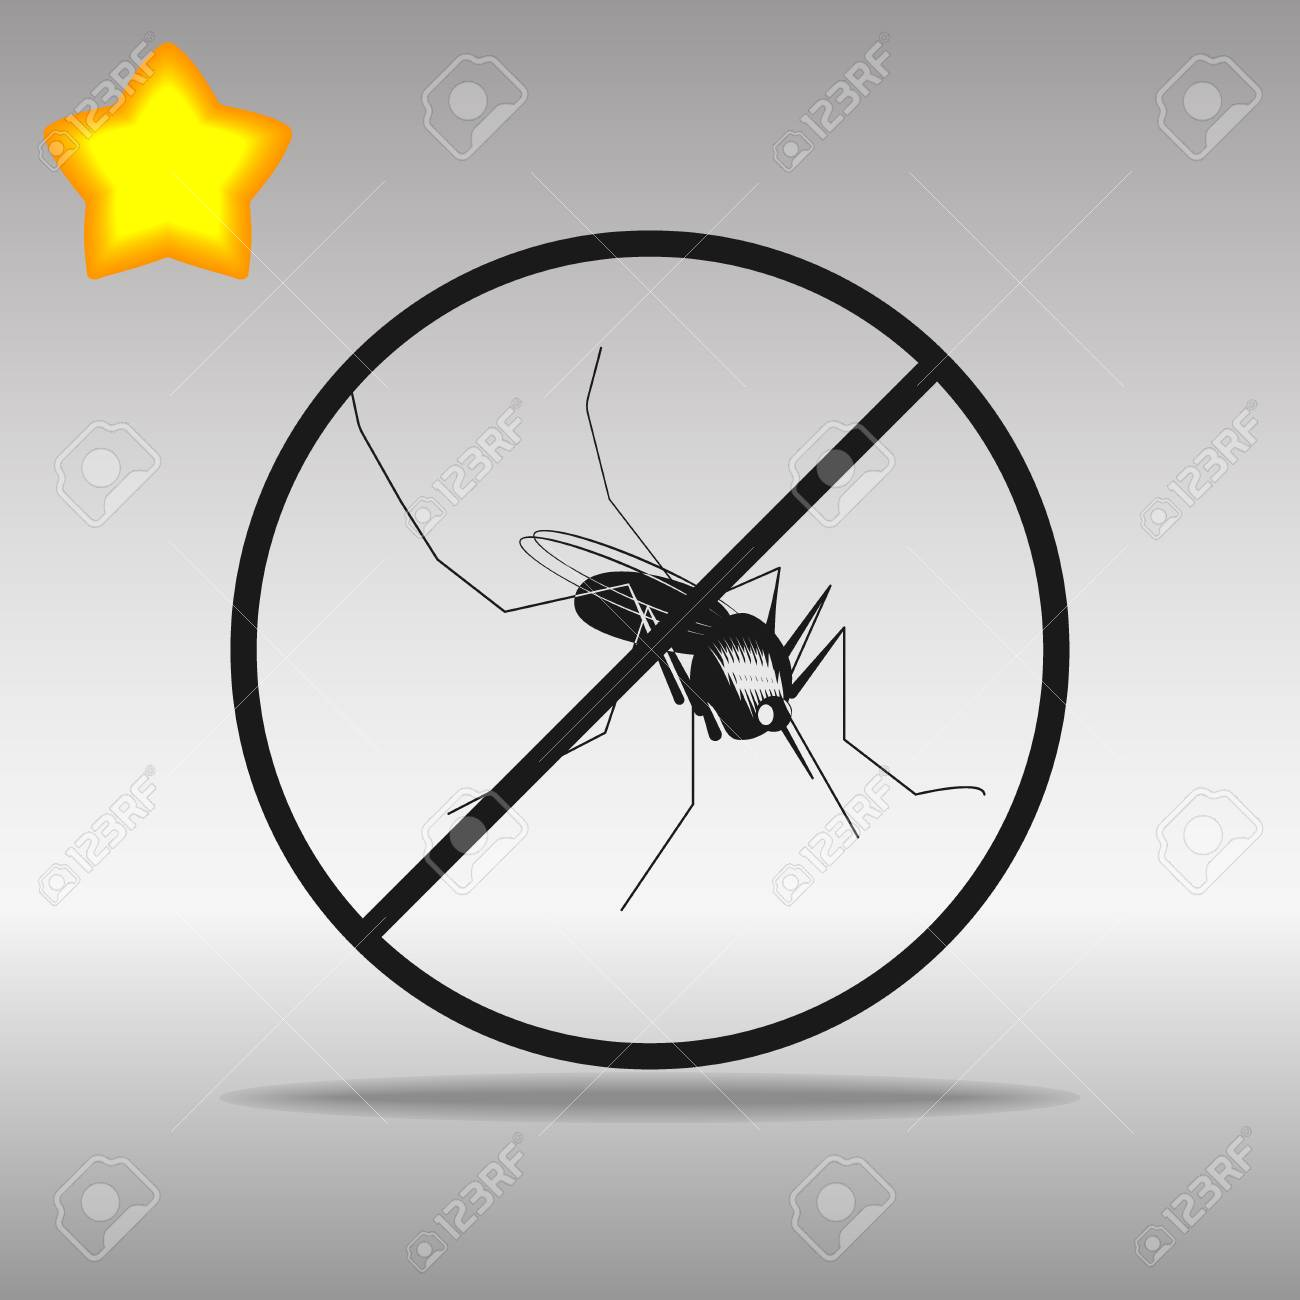 Mosquito ban black Icon button logo symbol concept high quality on the gray background - 79142260